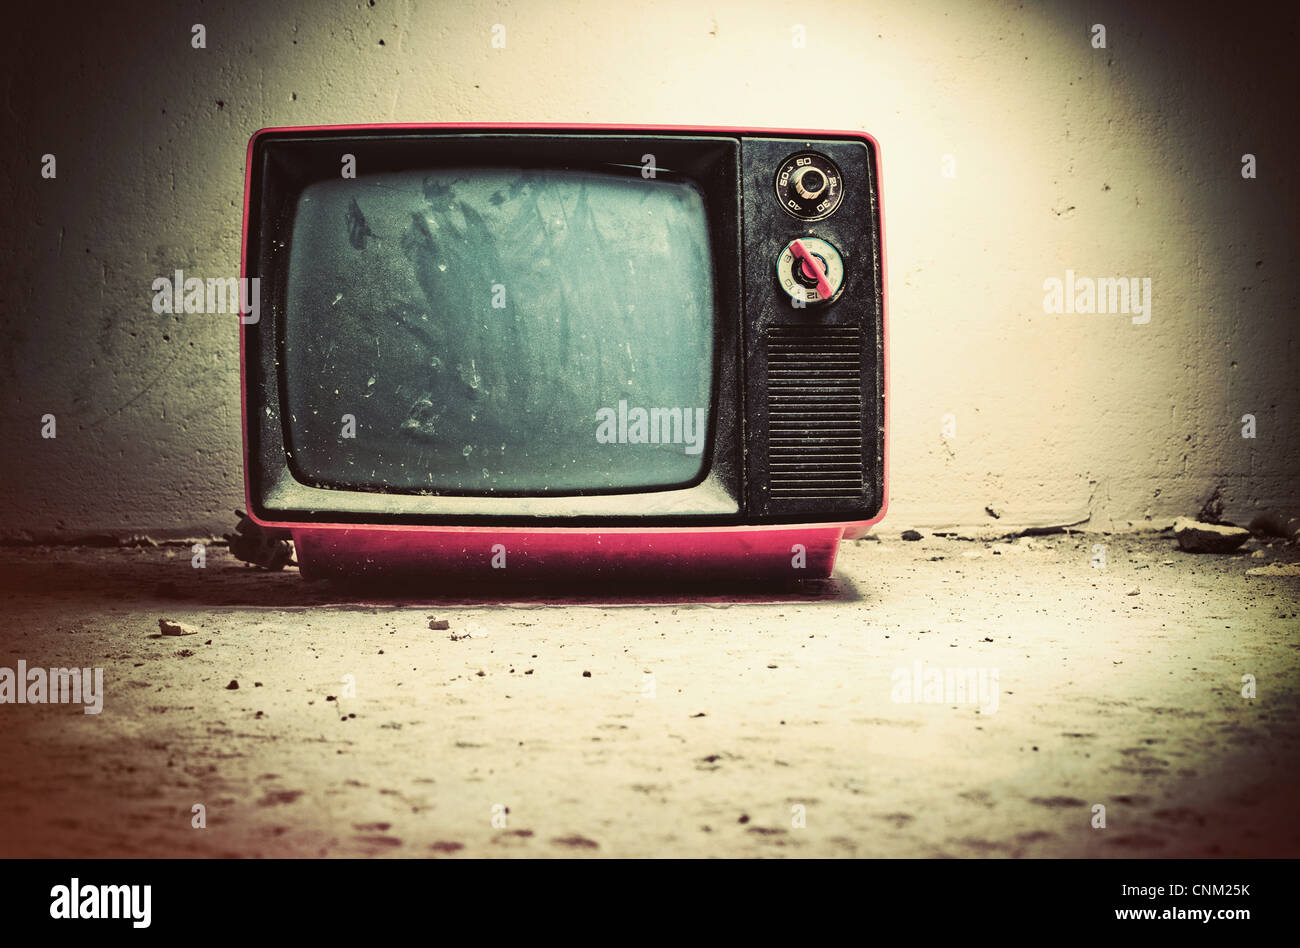 Old TV in room. Retro style colors. Stock Photo